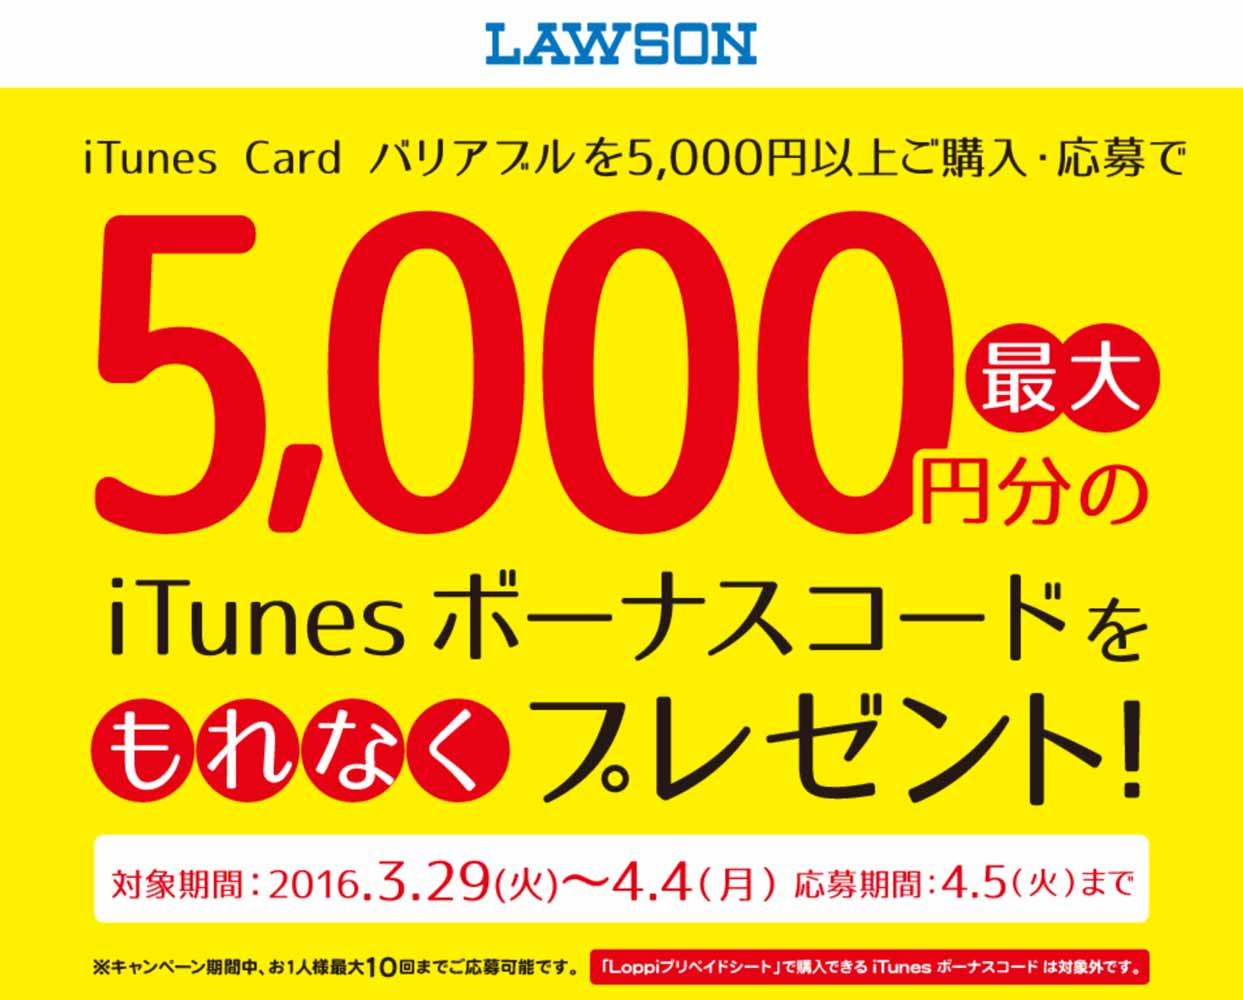 Itunescardlawson 01